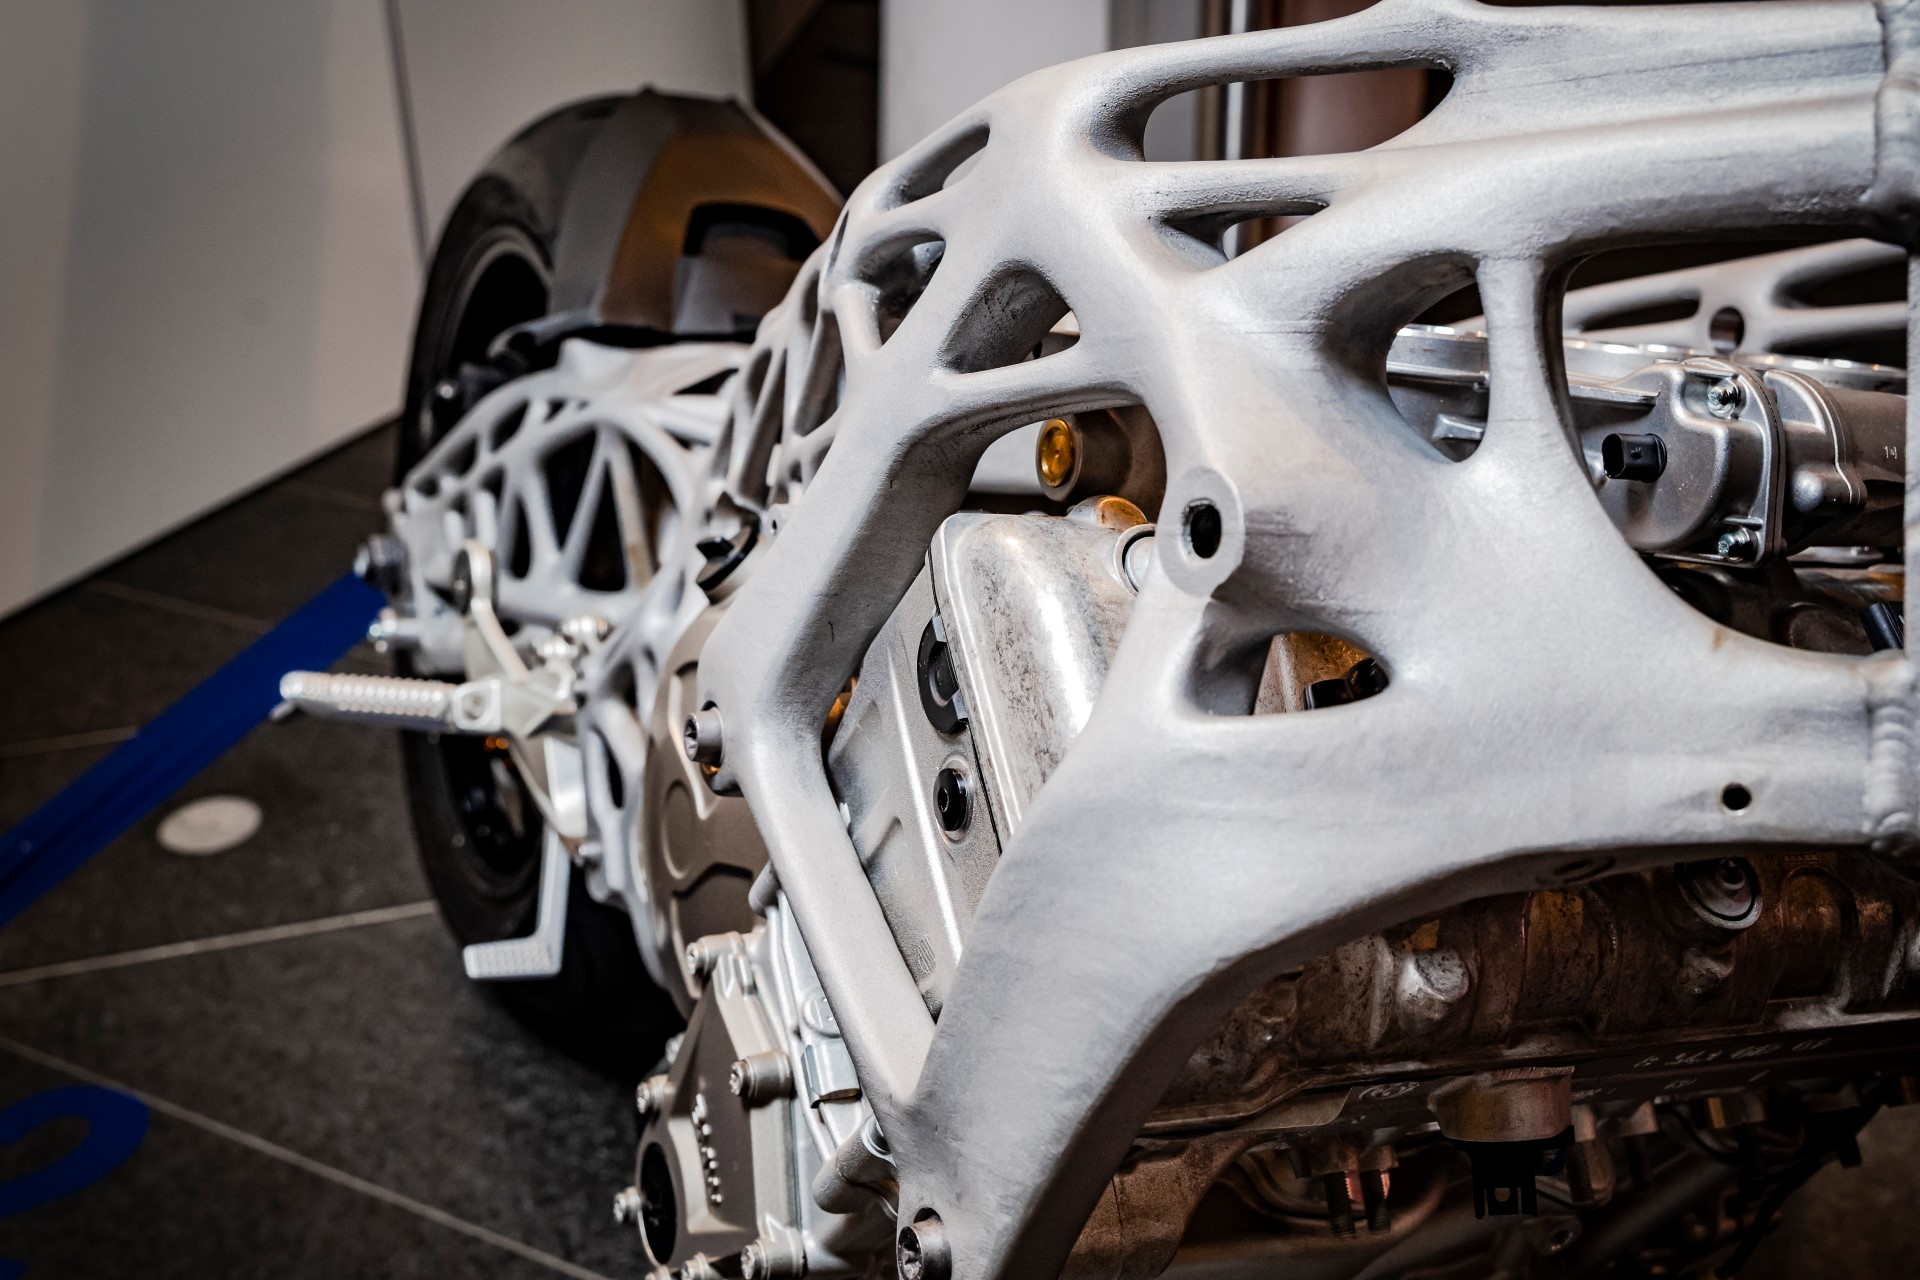 BMW reveals a 3D printed S1000RR chassis